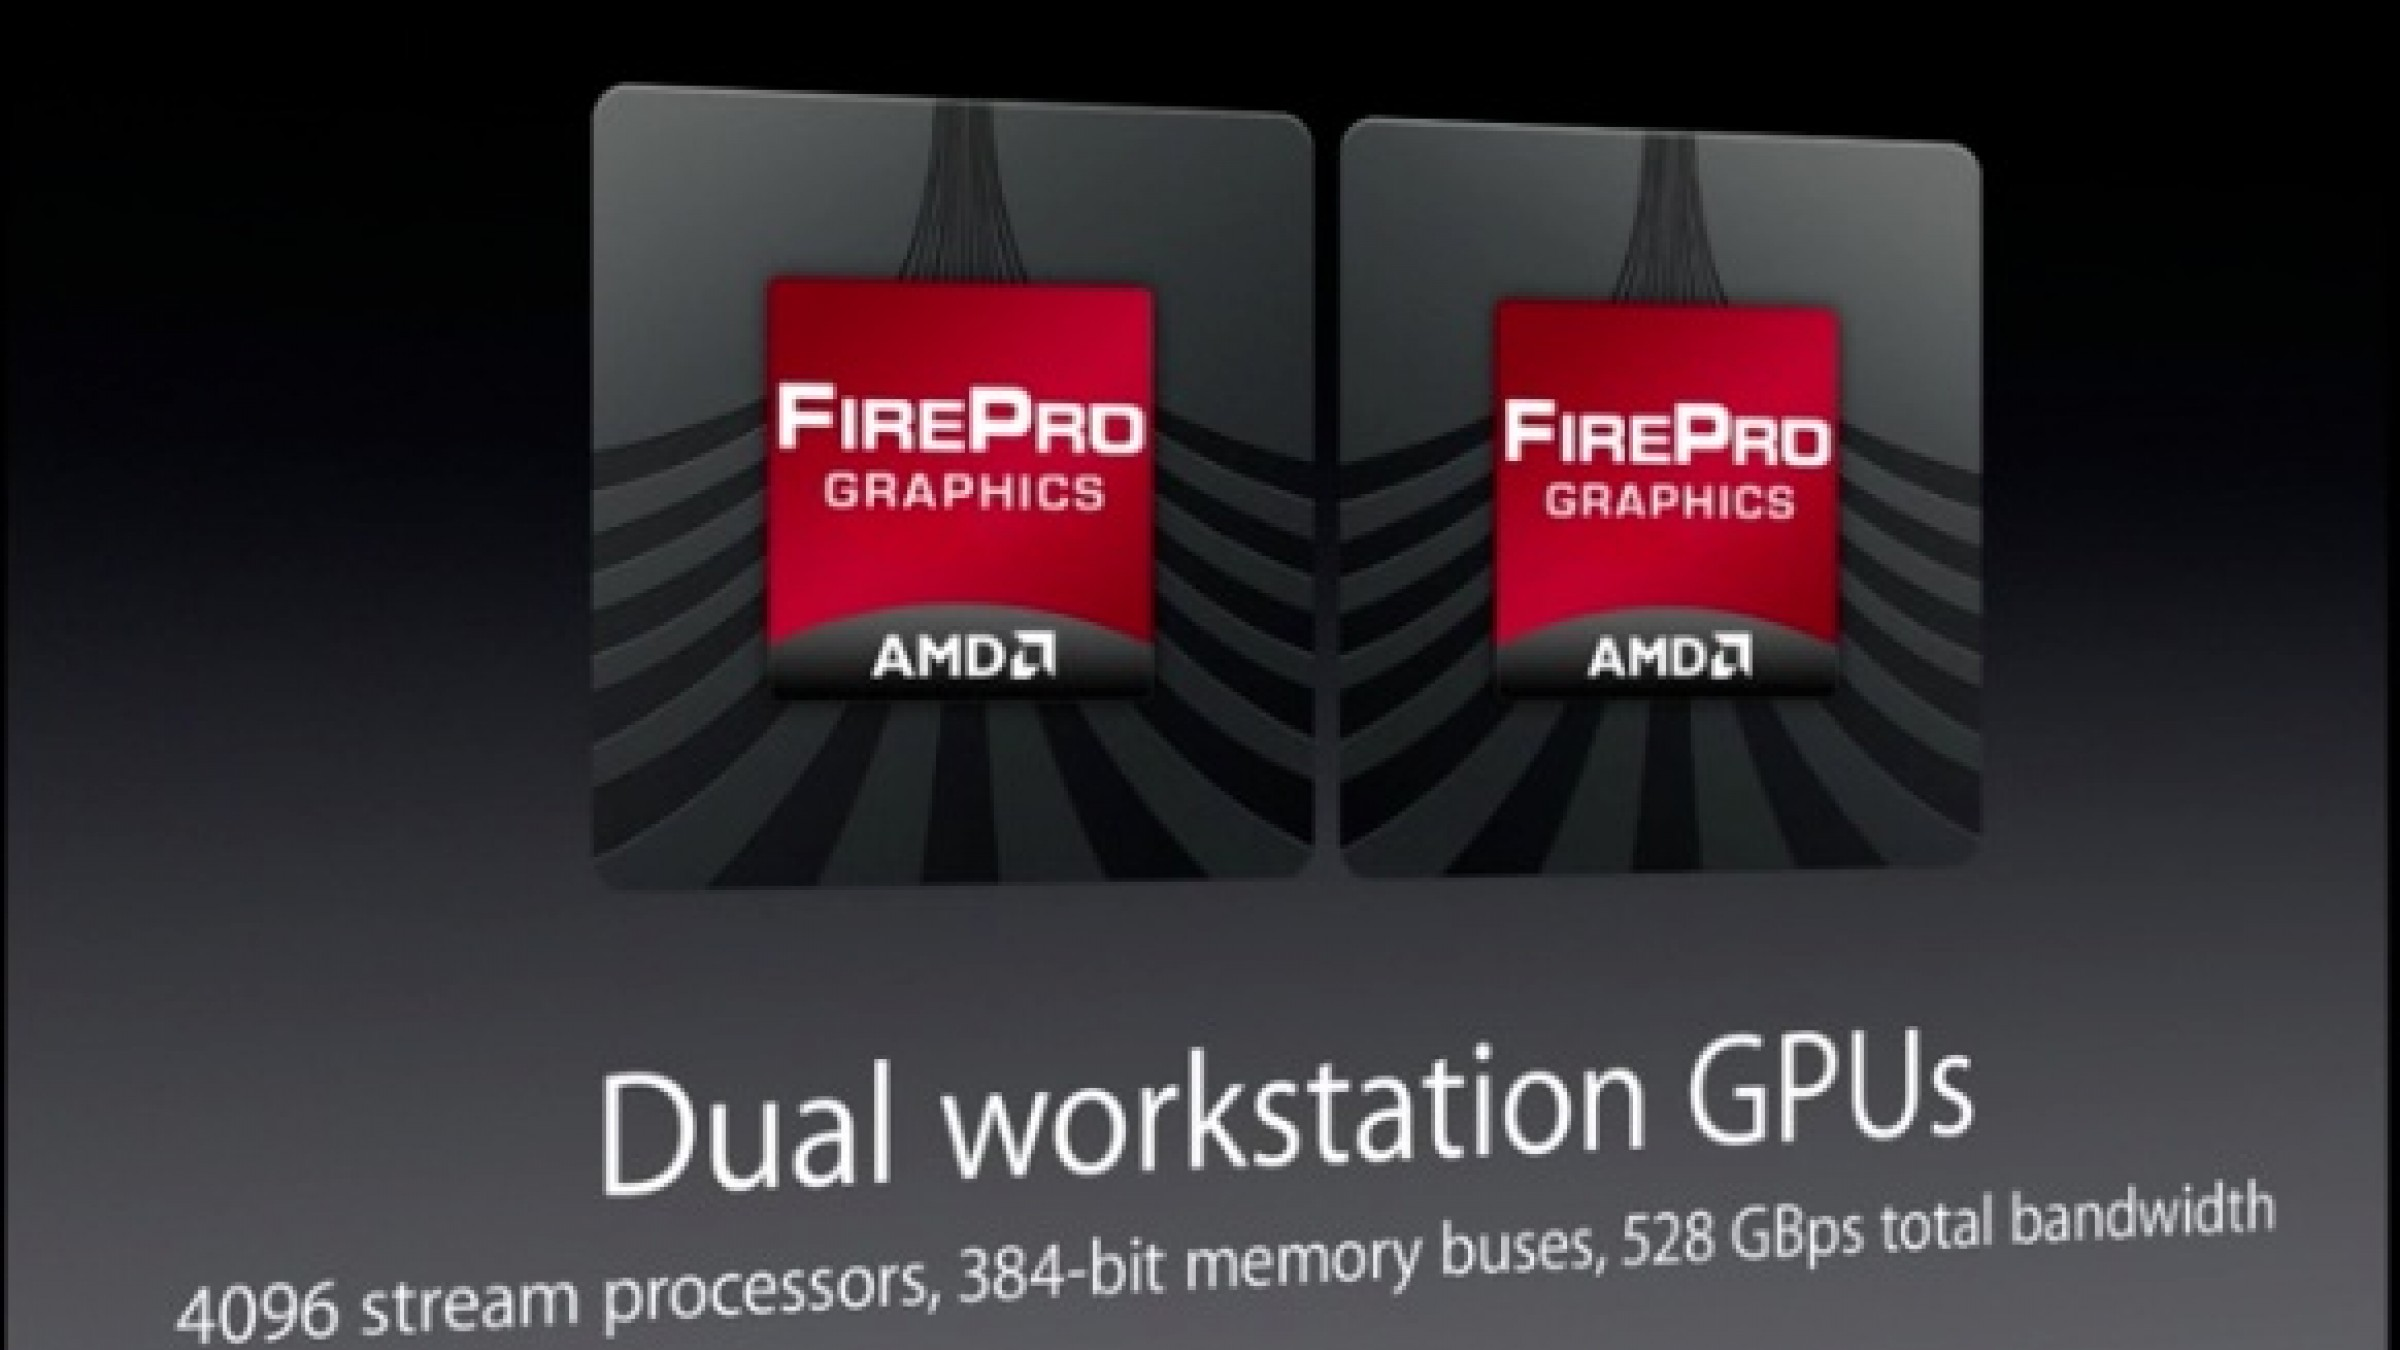 Mac Pro AMD GPUs Getting Full Hardware Acceleration Support in